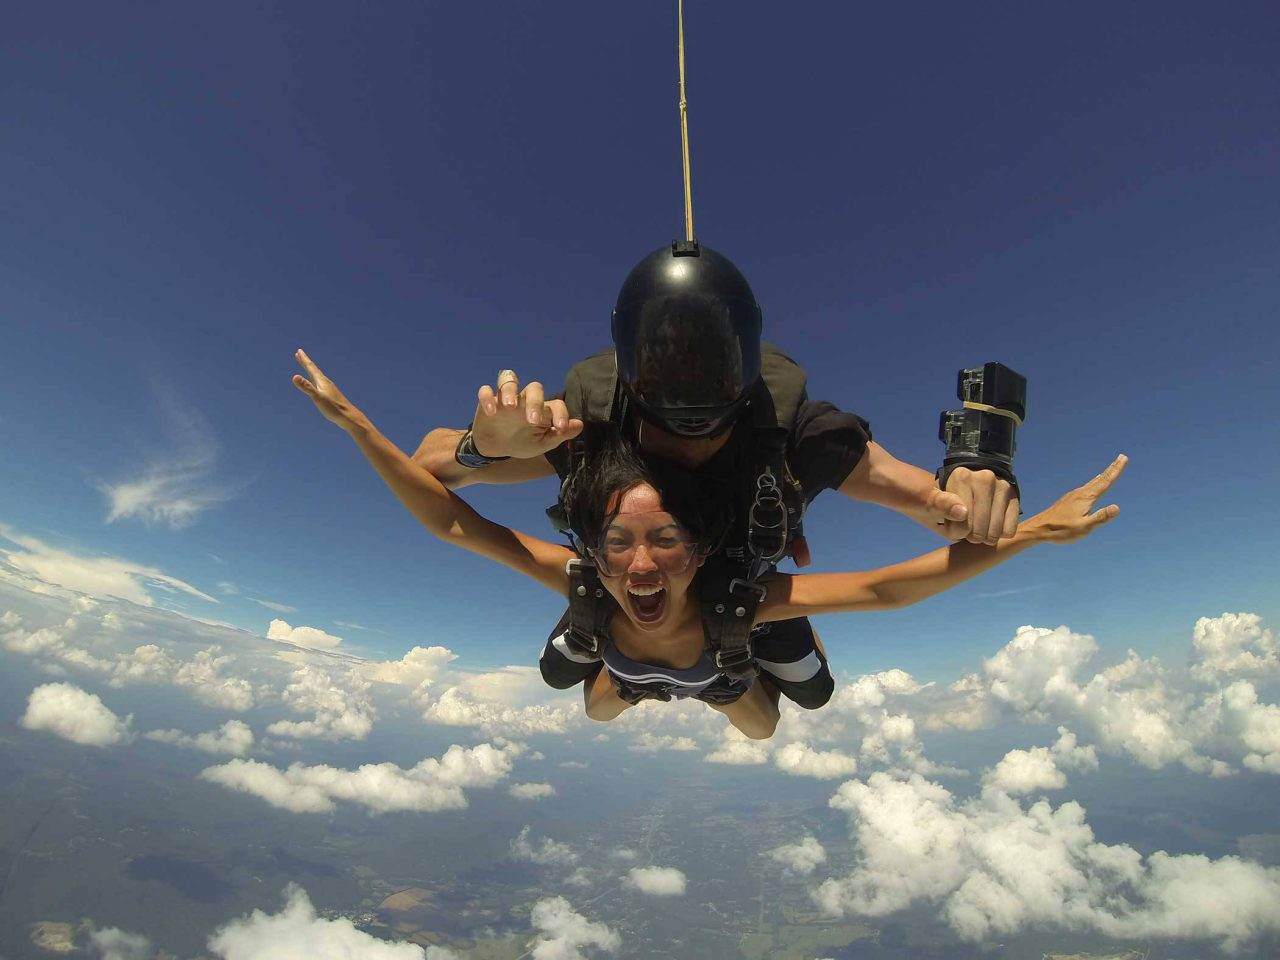 Female holds her arms out in excitement during free fall